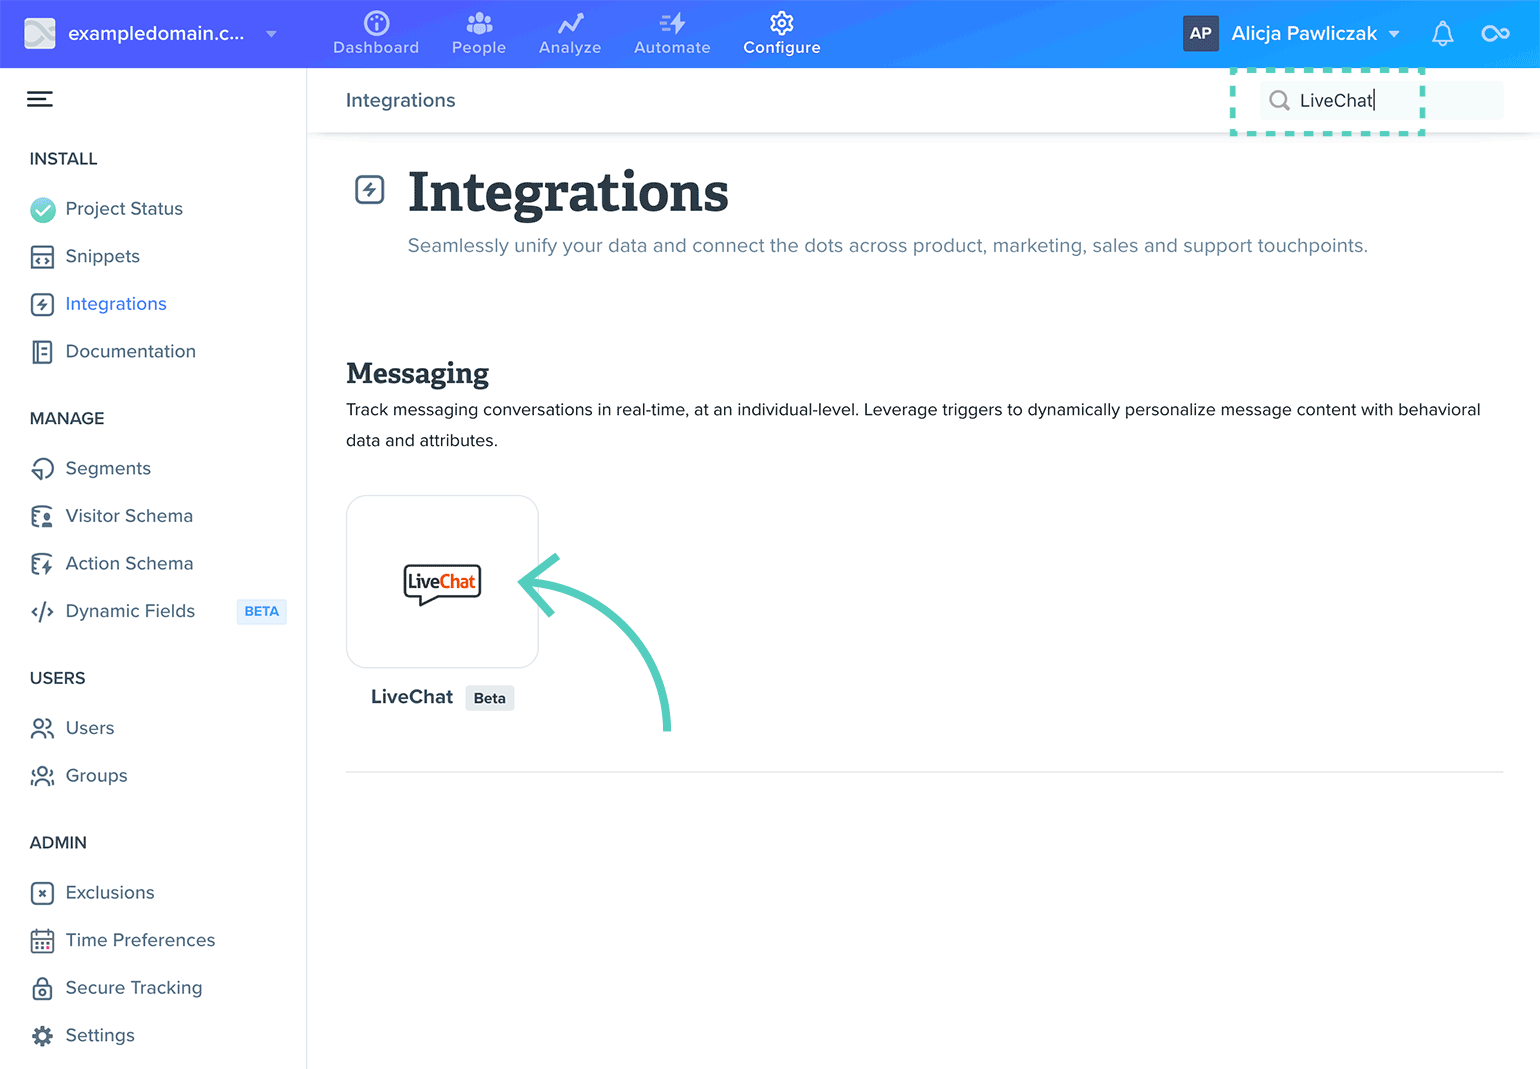 Search for LiveChat in Woopra integrations tab